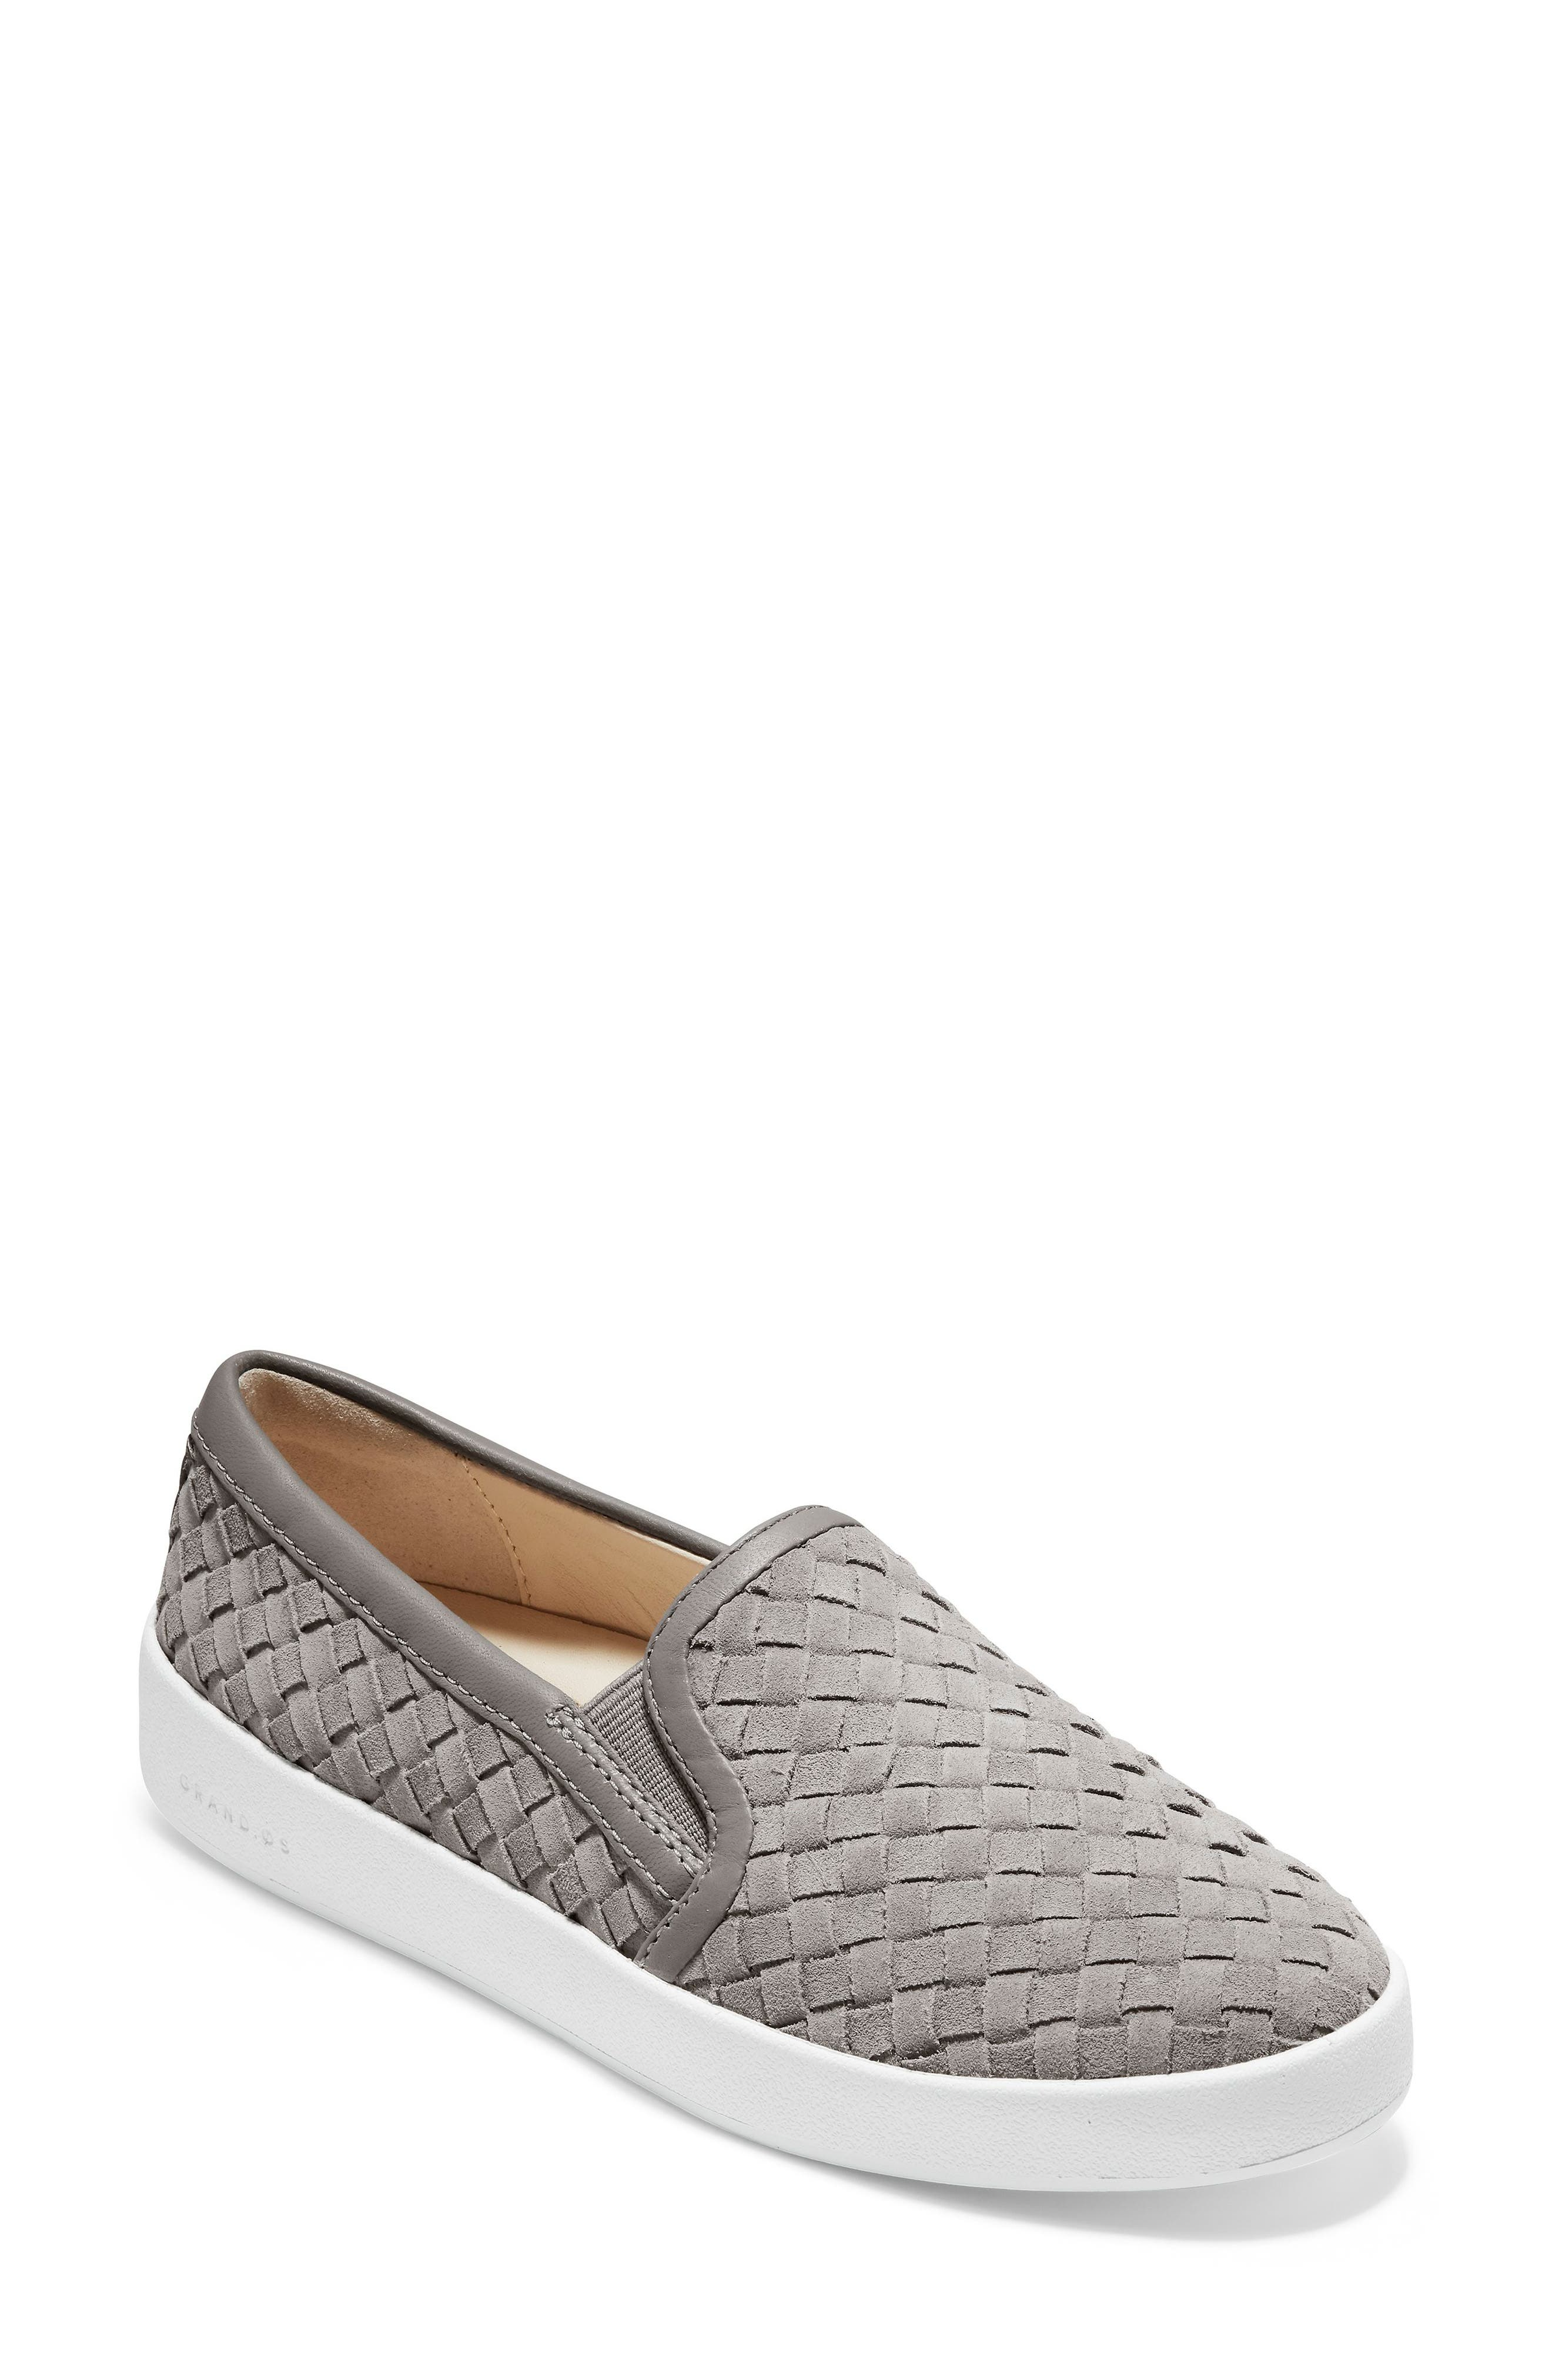 ,                             GrandPro Woven Slip-On Sneaker,                             Main thumbnail 1, color,                             IRONSTONE WOVEN SUEDE